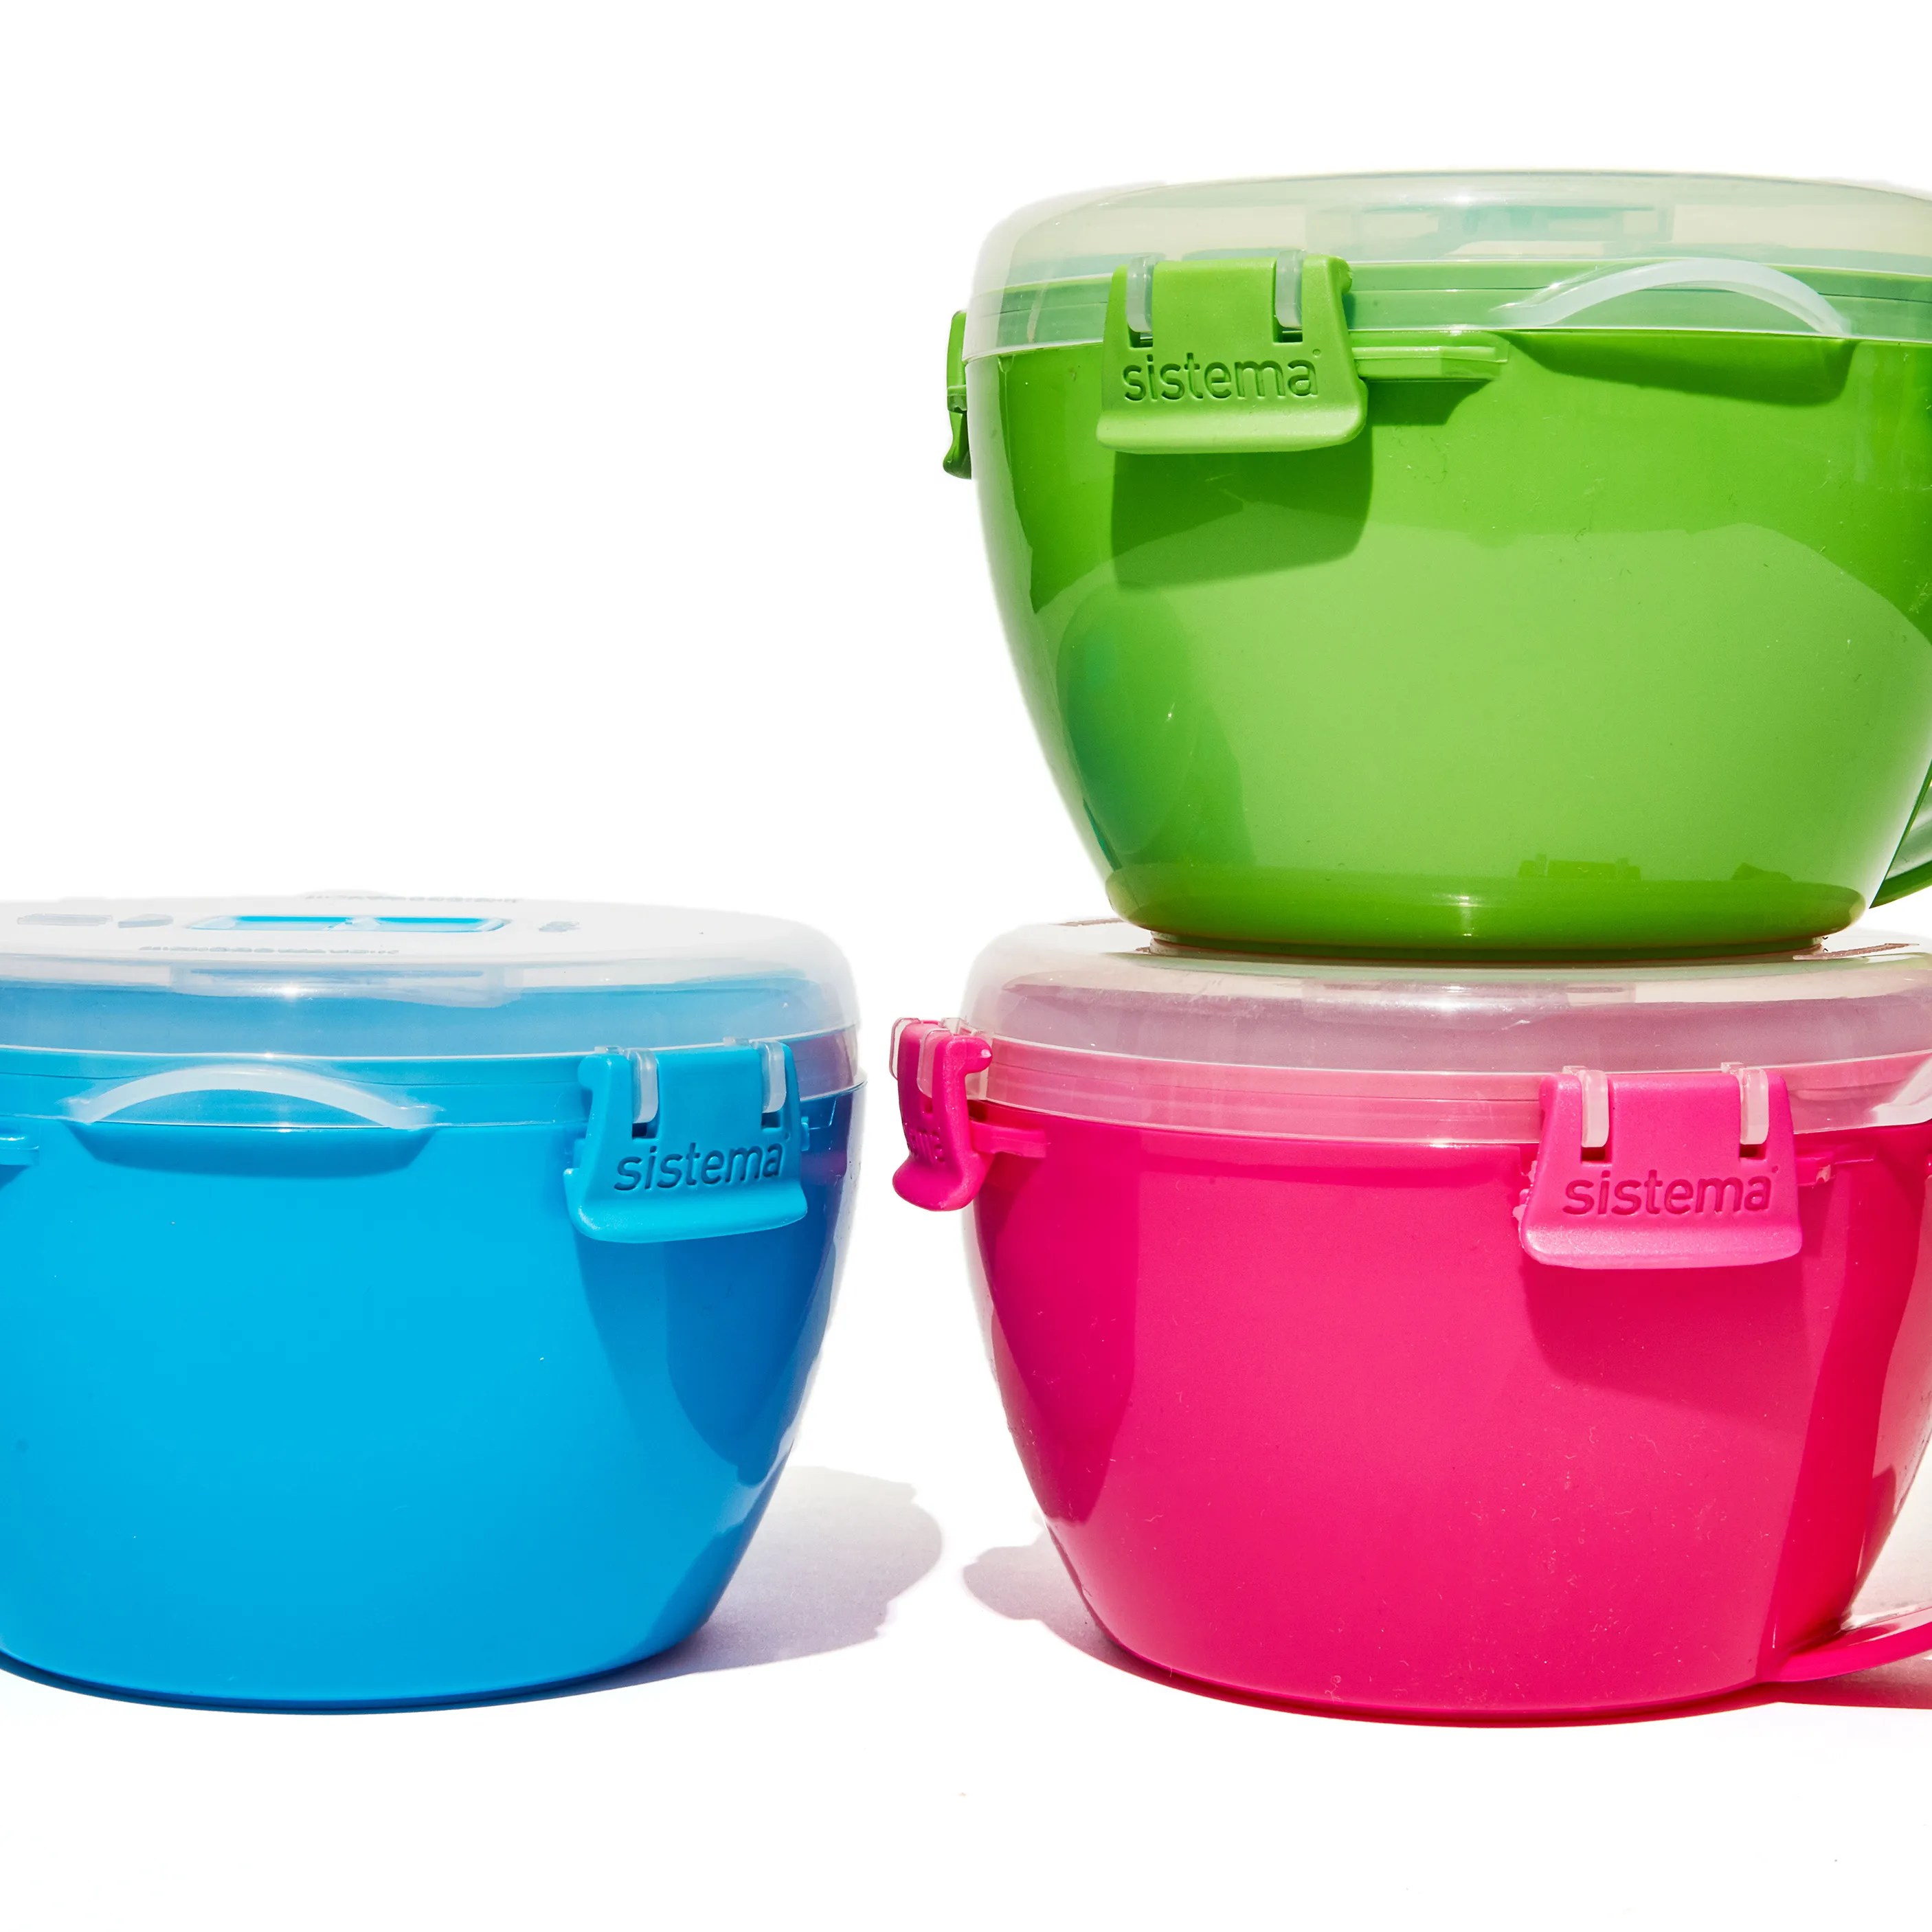 sistema microwavable plastic containers